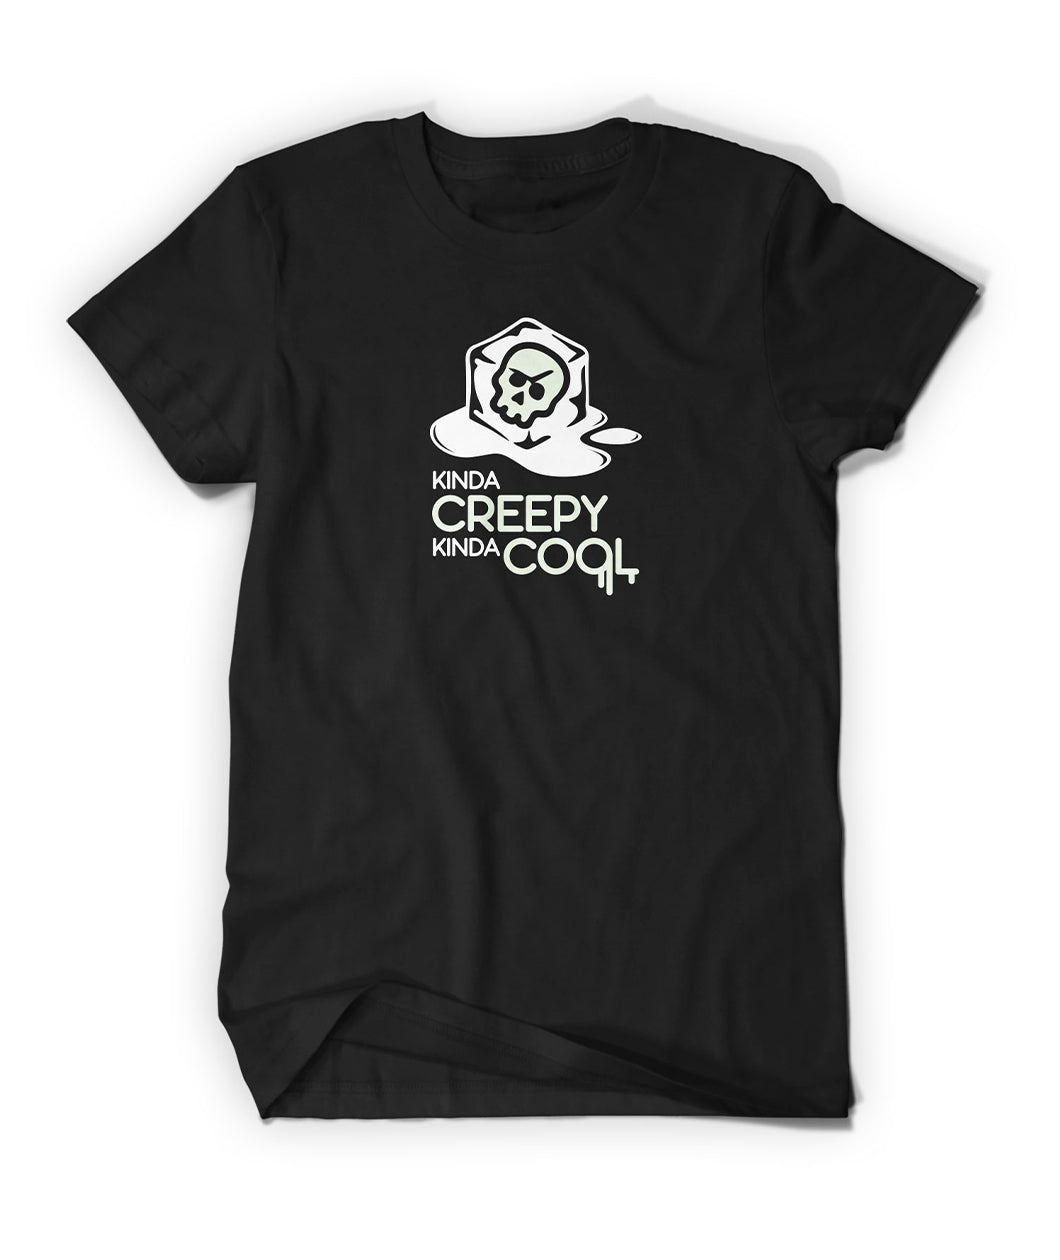 Glowy Creepy Cool Shirt